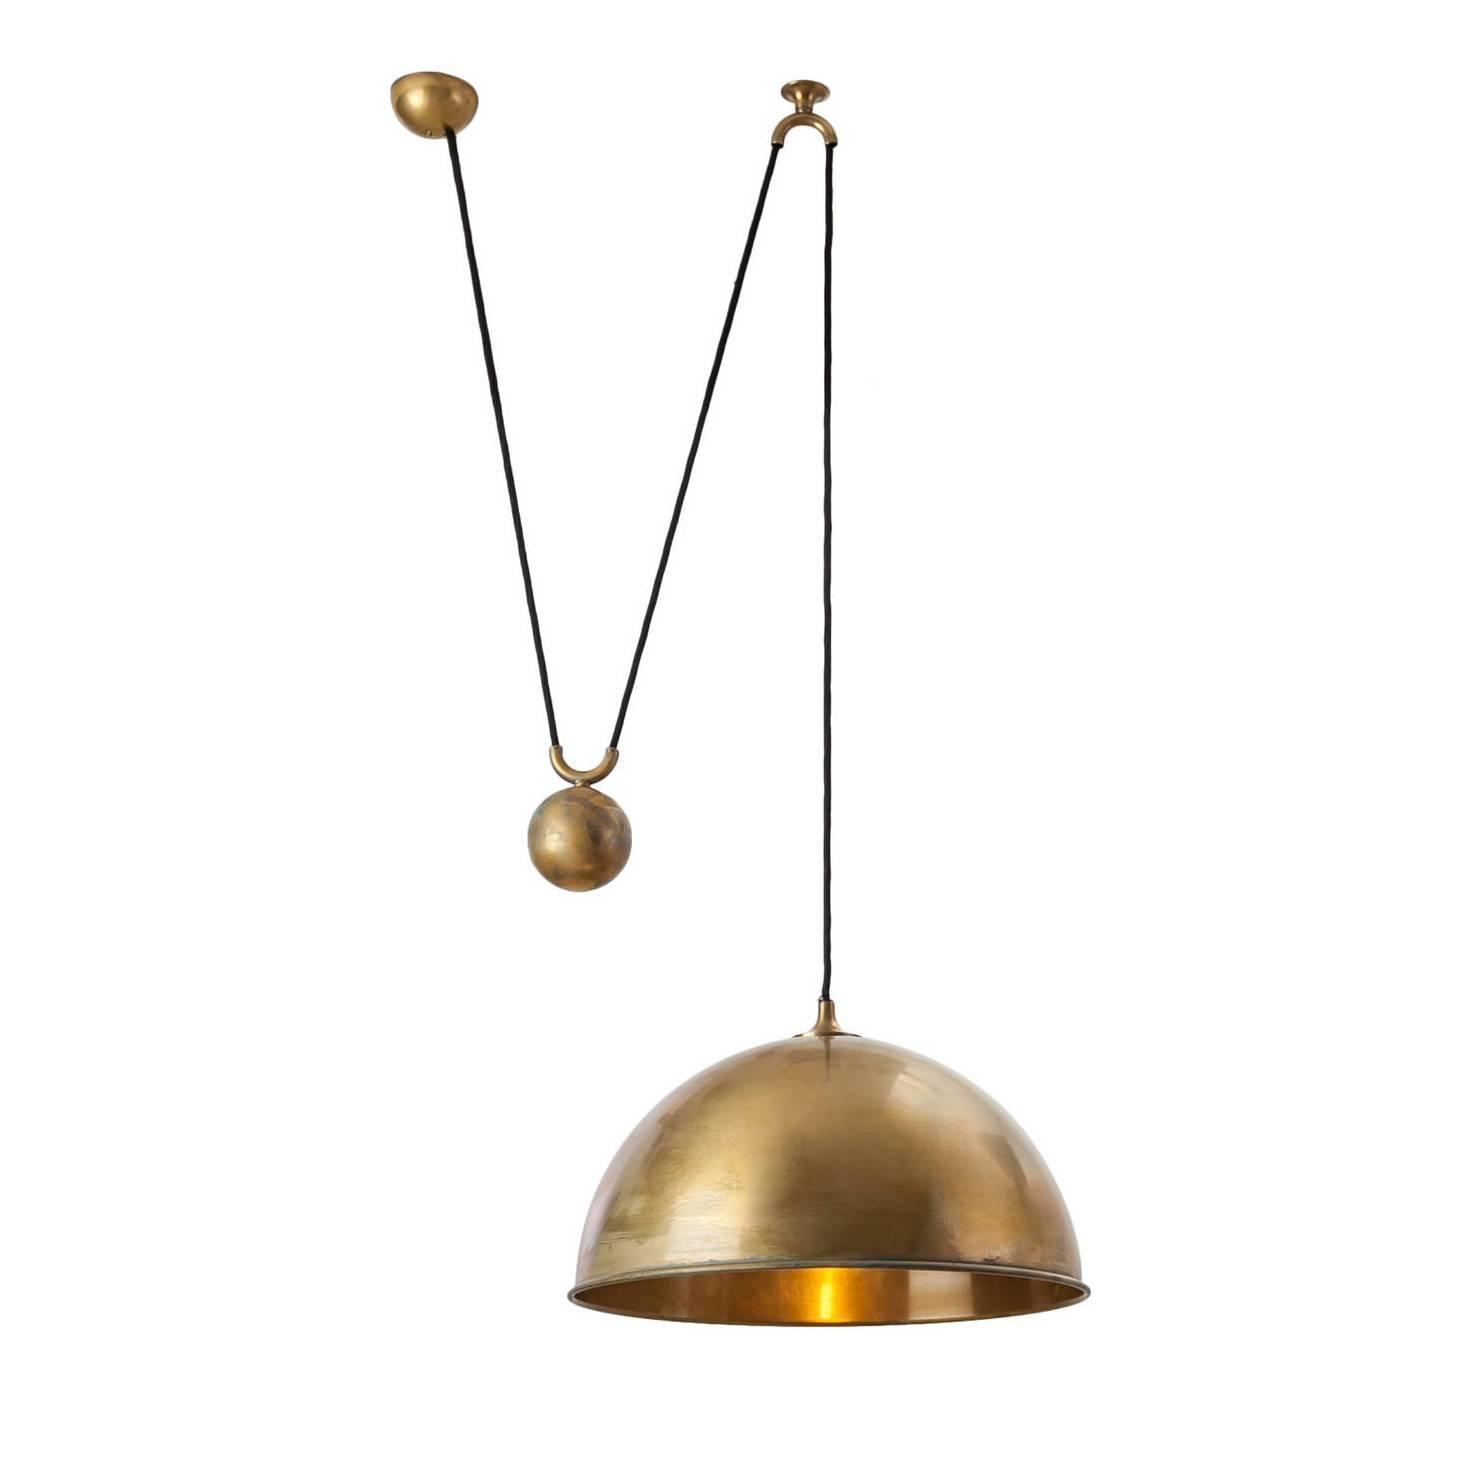 uk buy duane design brass utility online pendant side light today menu